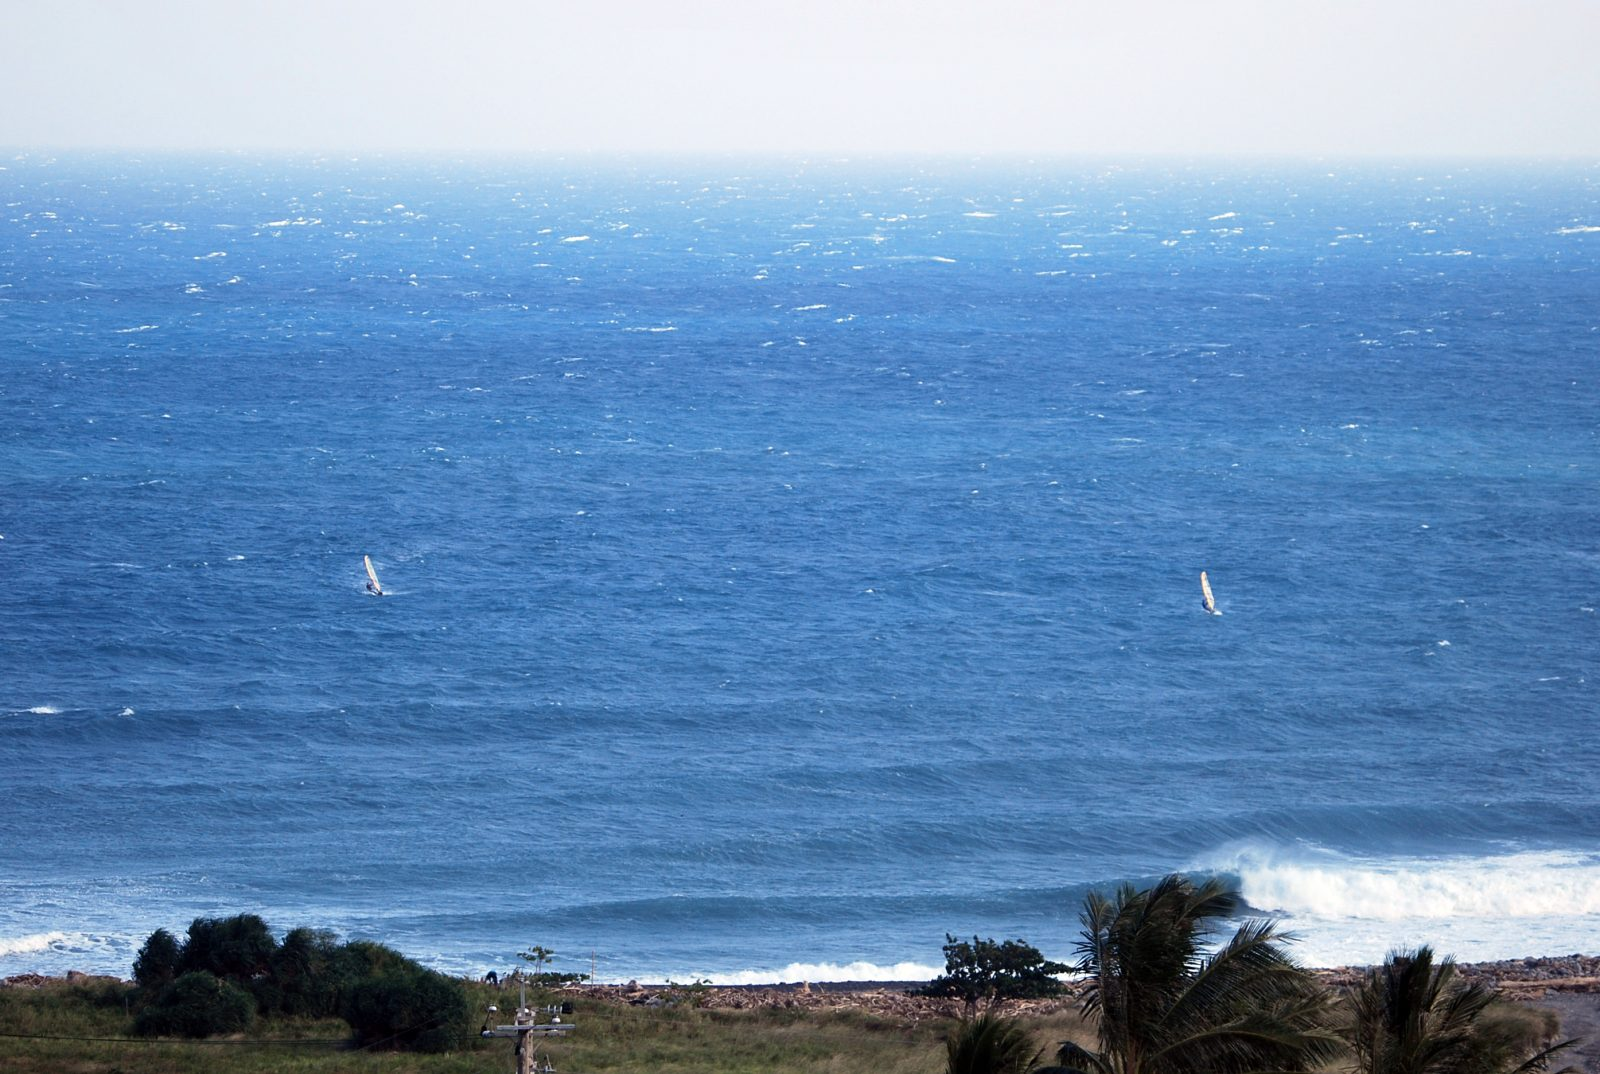 windsurfing-Taiwan-Jinzun-Point-e1465092744134